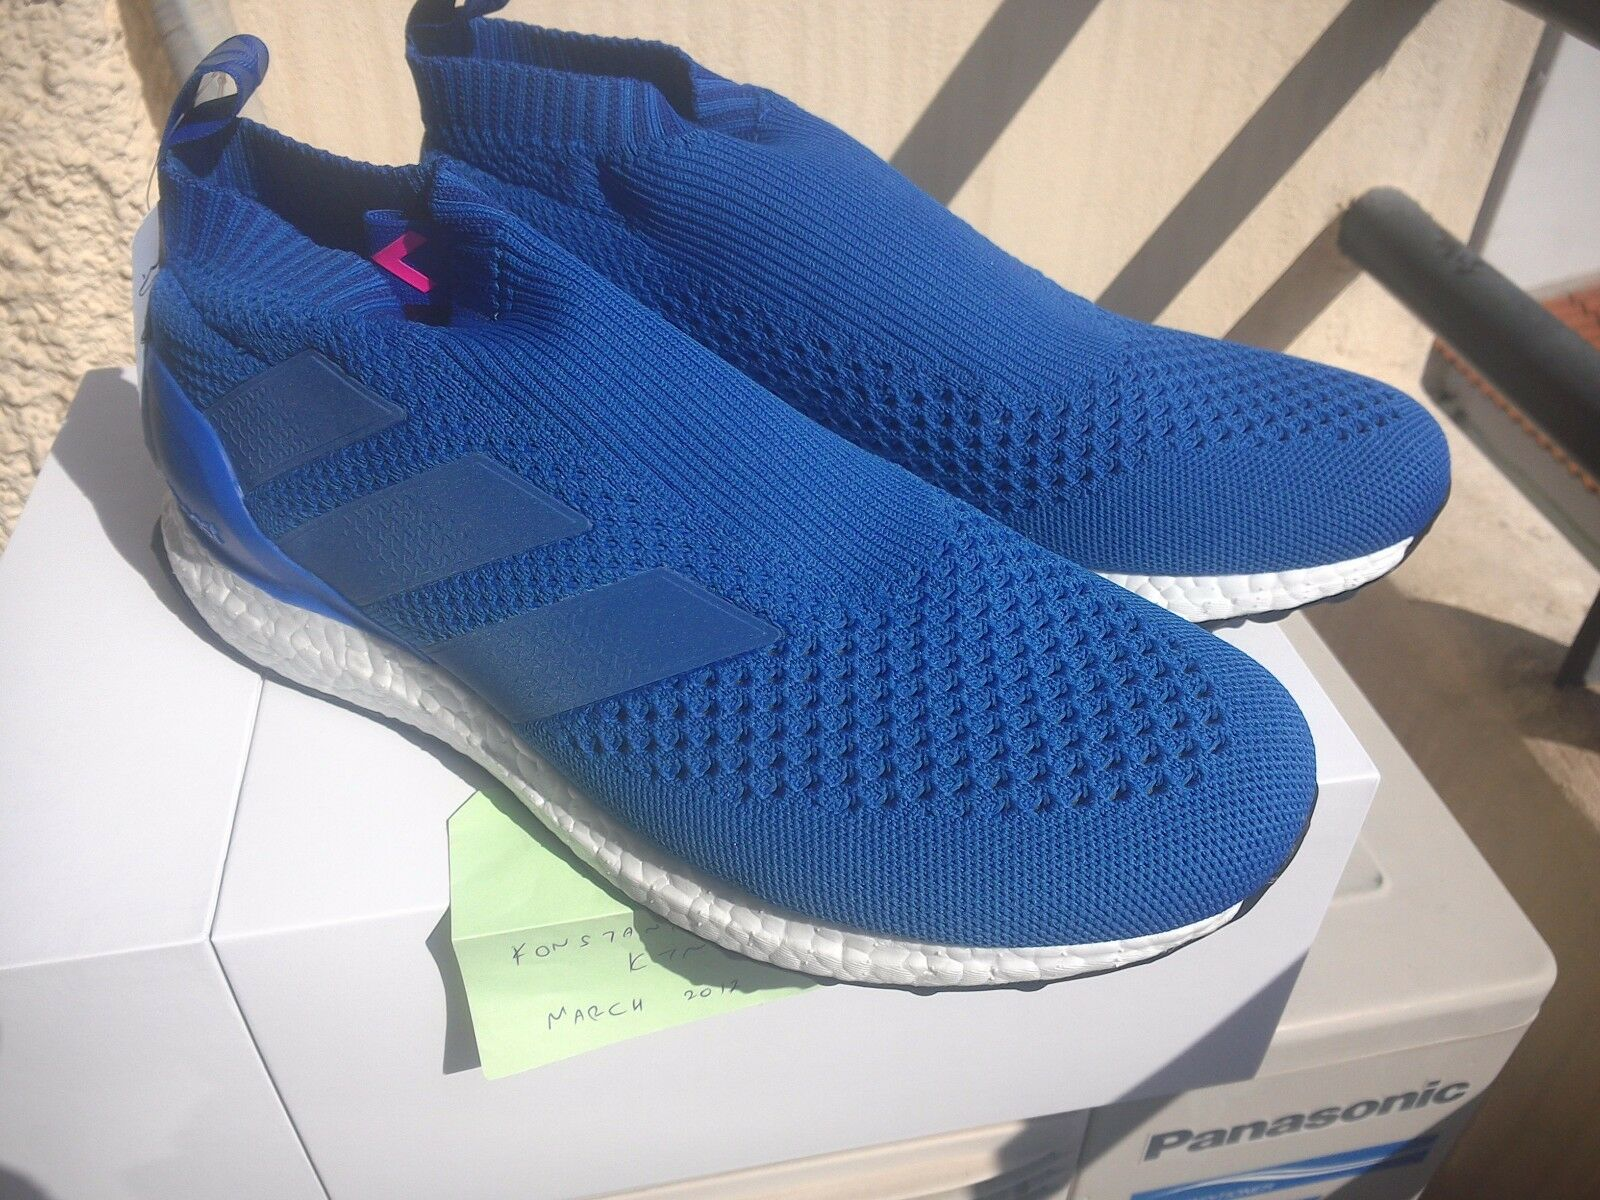 Adidas ACE 17 Purecontrol Ultra Boost bluee BY9090 LTD US 10.5  (SEND OFFERS)